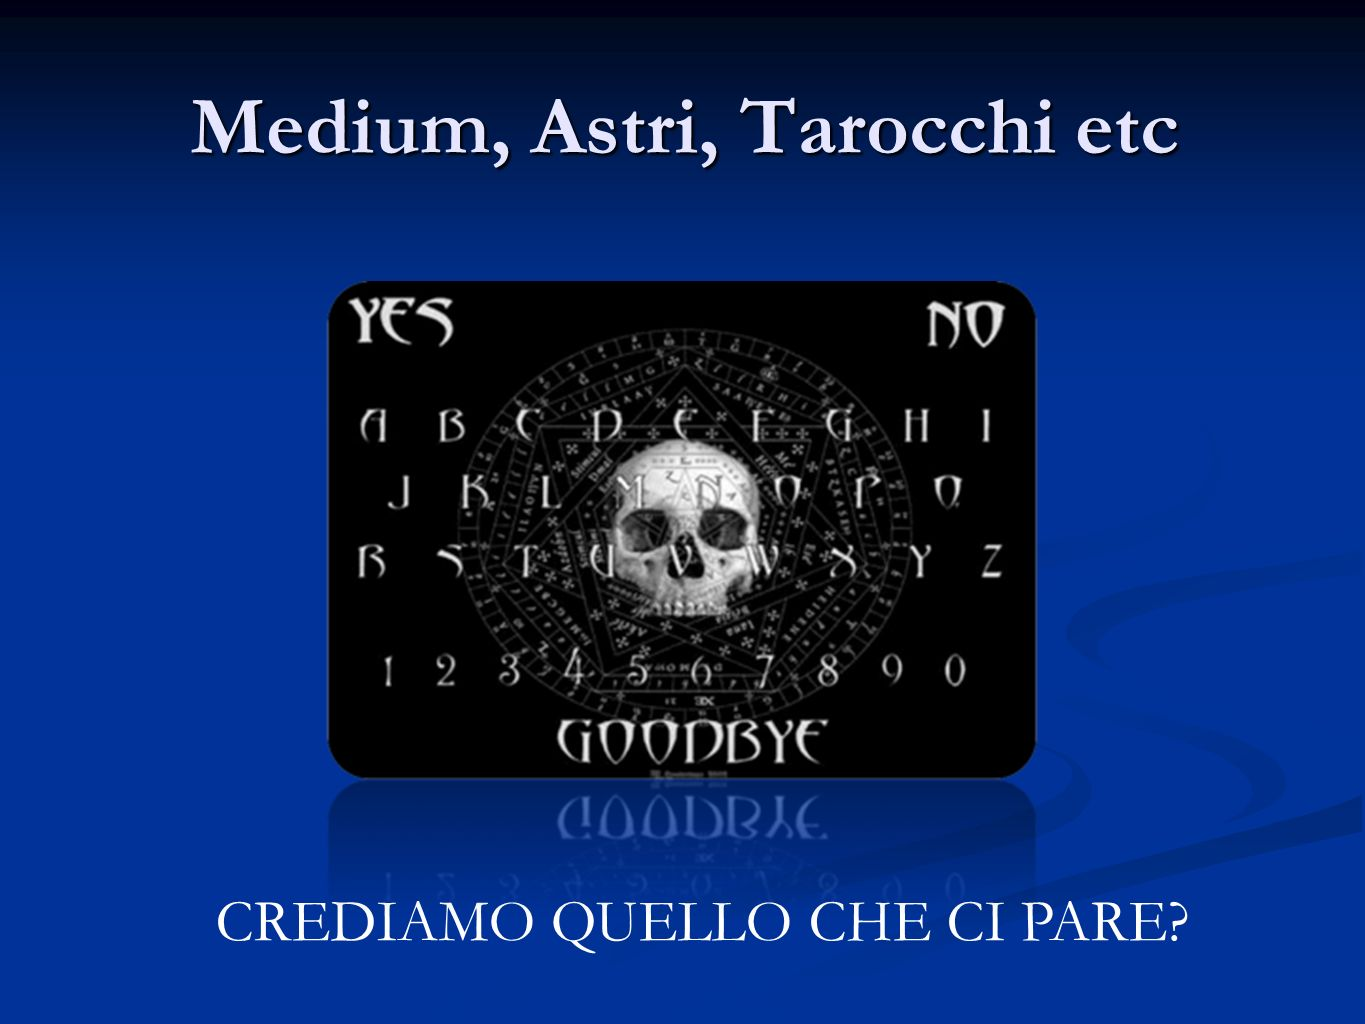 Medium, Astri, Tarocchi etc